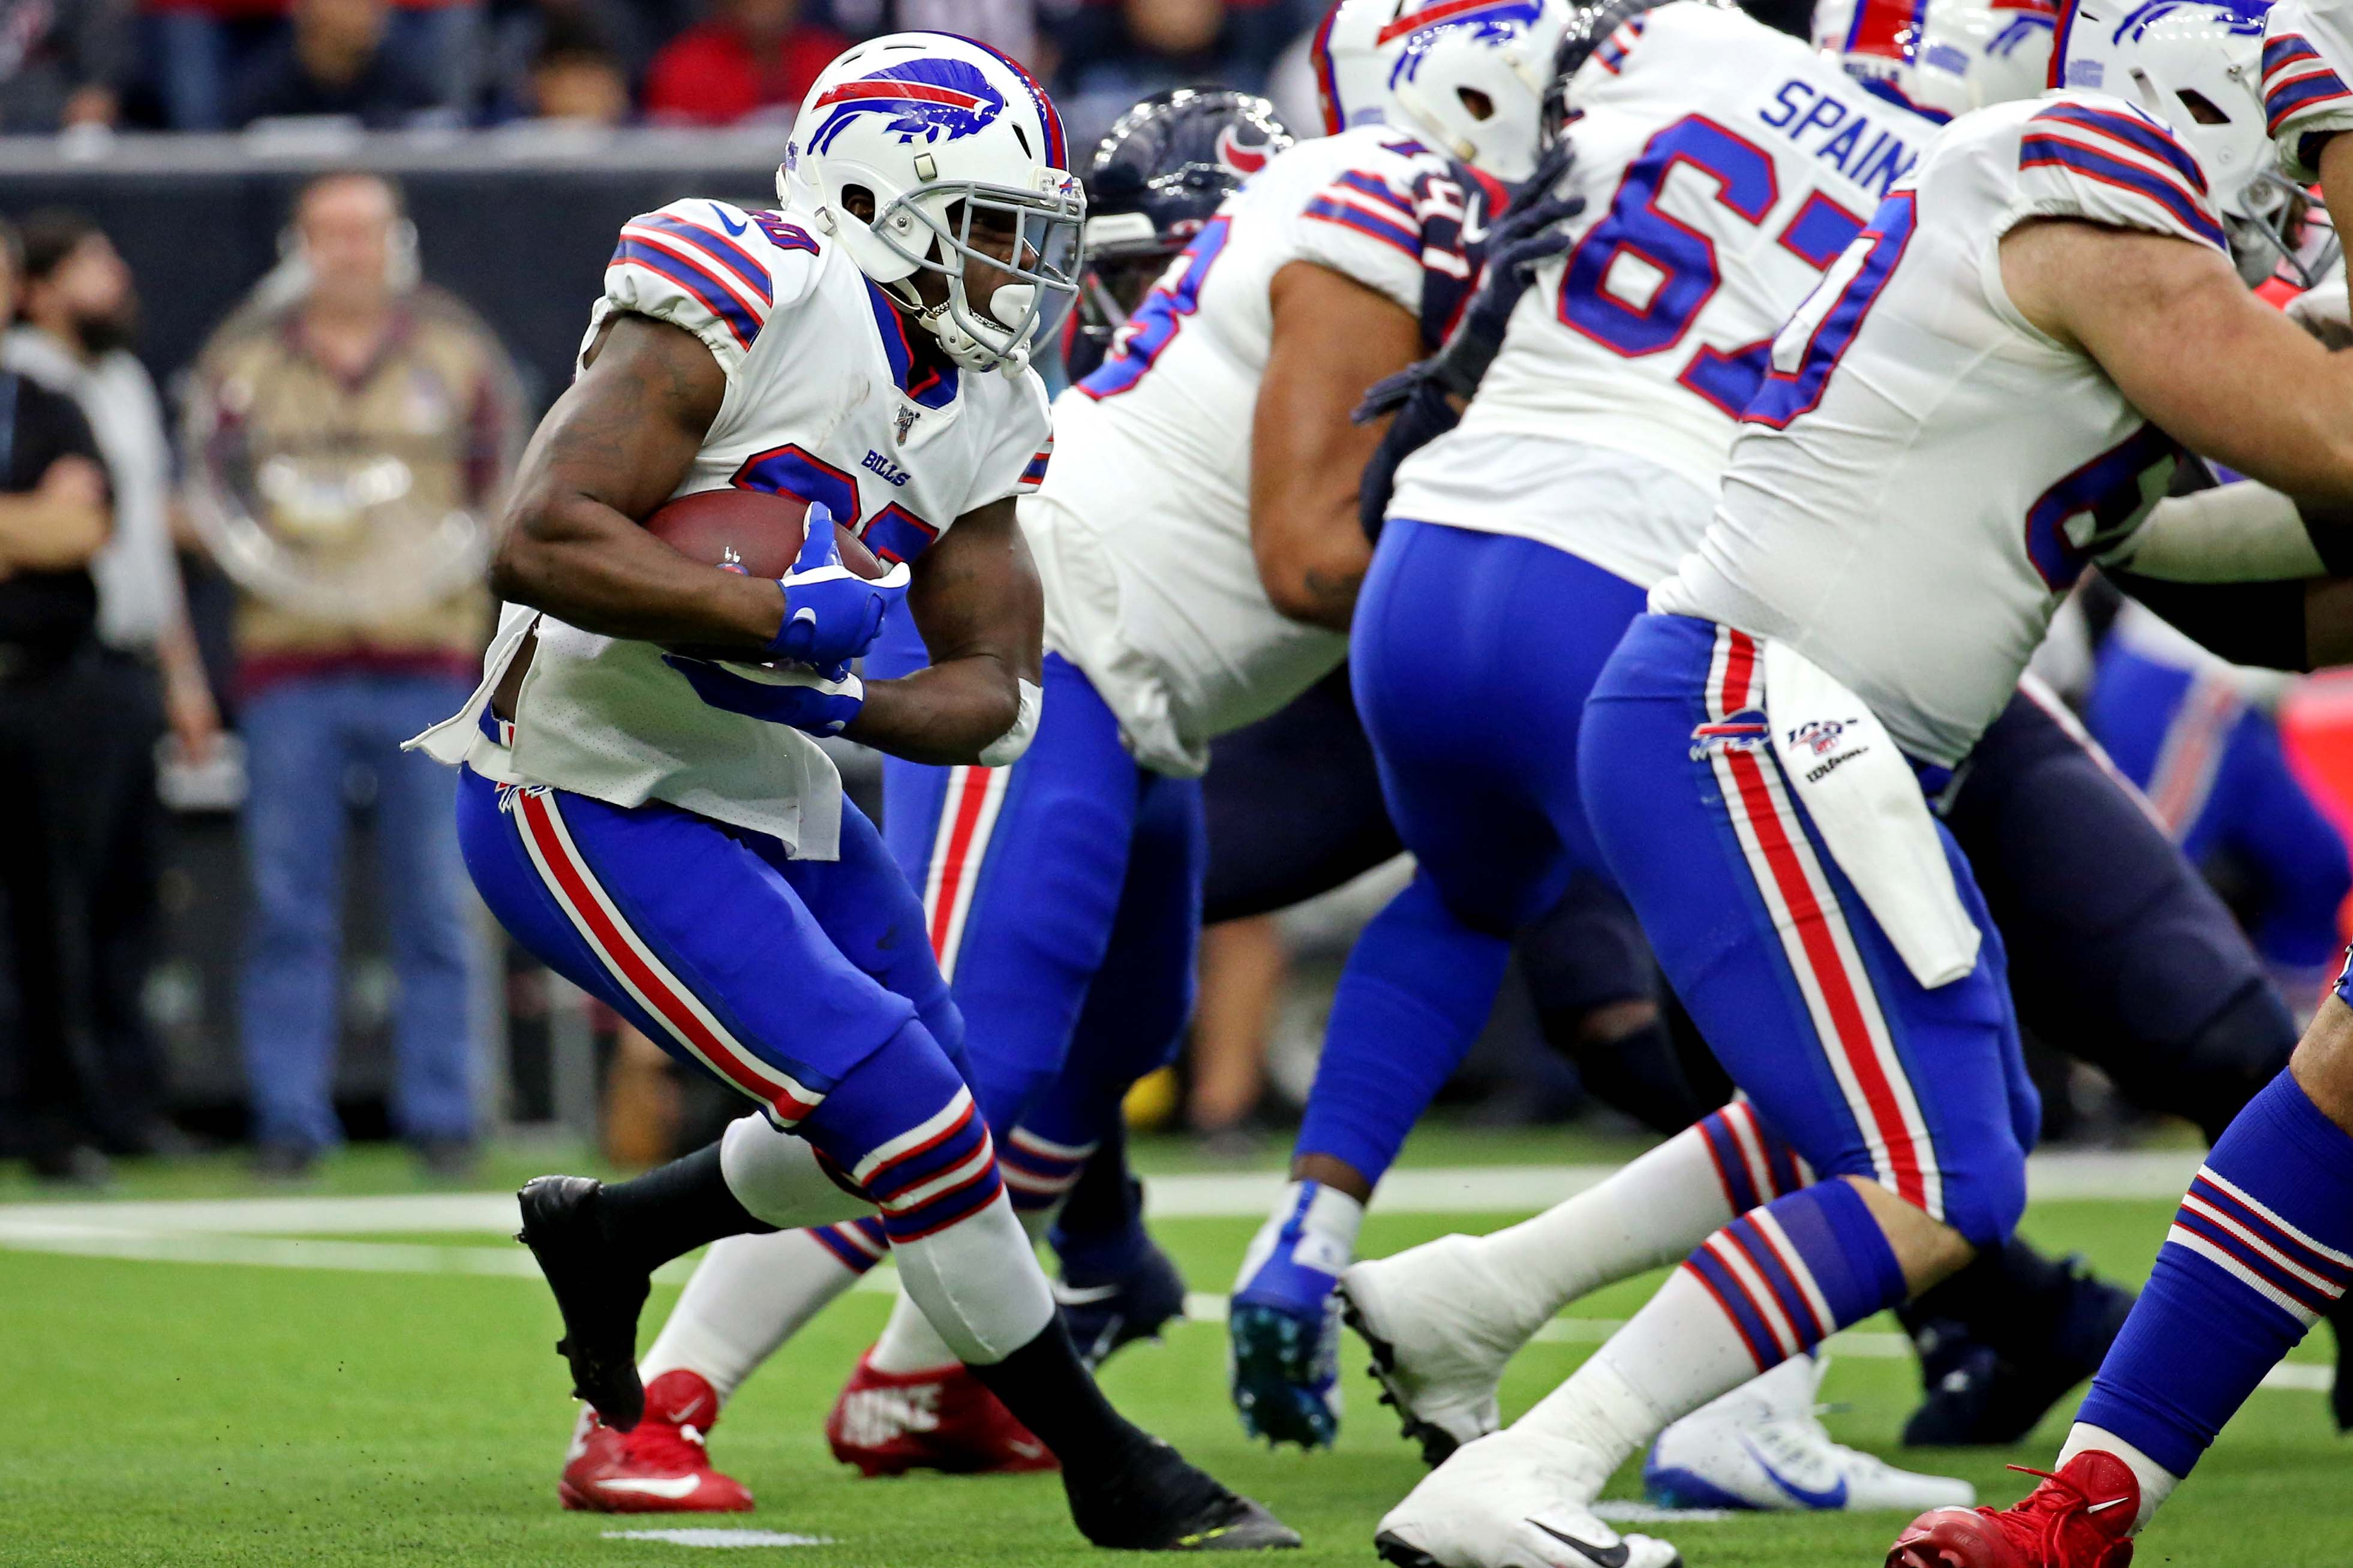 Frank Gore Mulls Over NFL Future With Bills